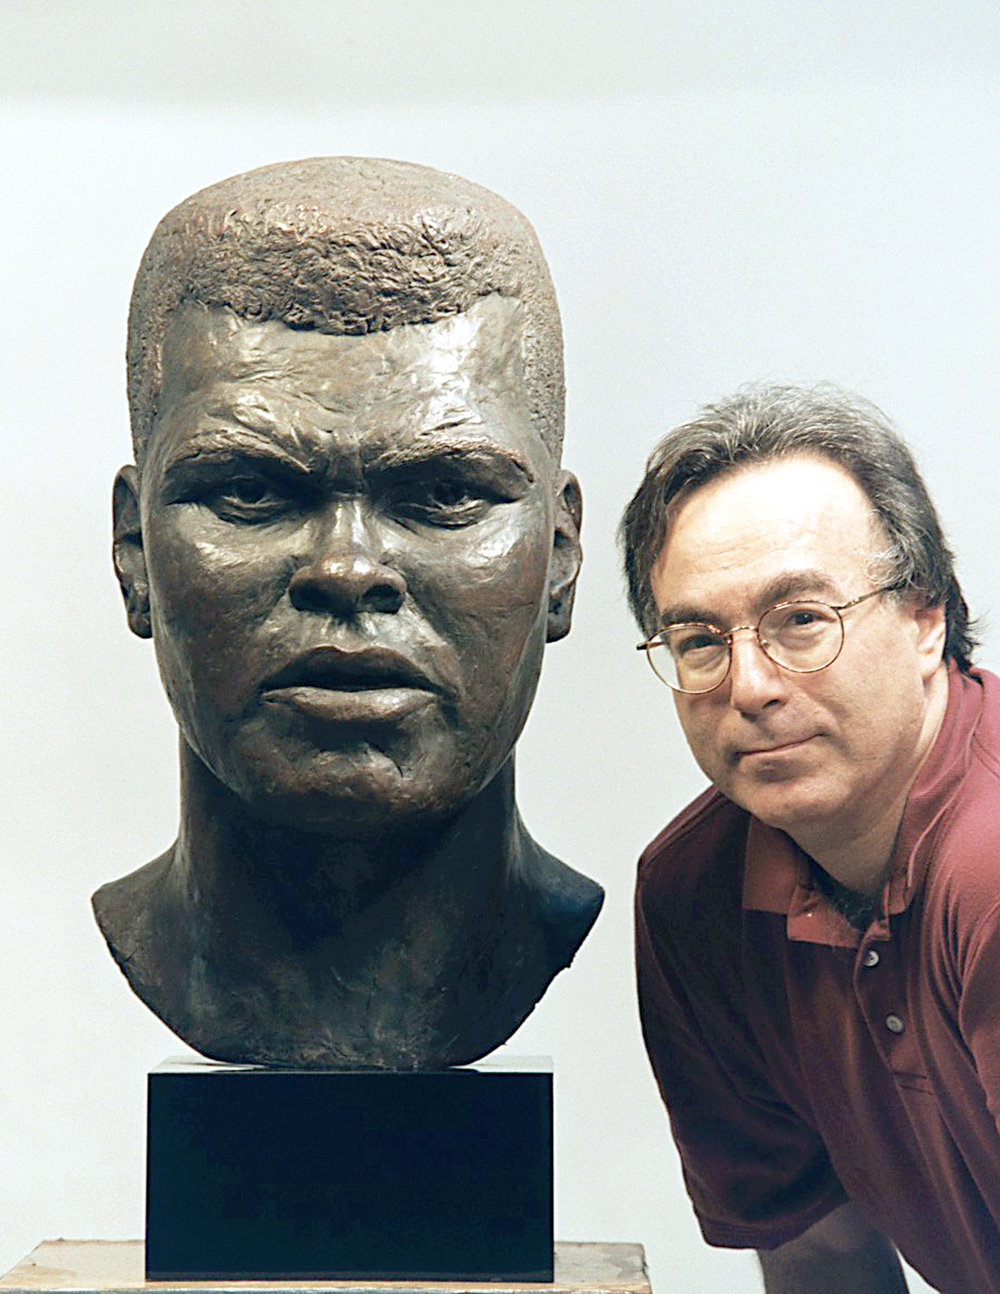 becoming-muhammad-ali-bronze-bronze-bronze-over-life-size-01.jpg